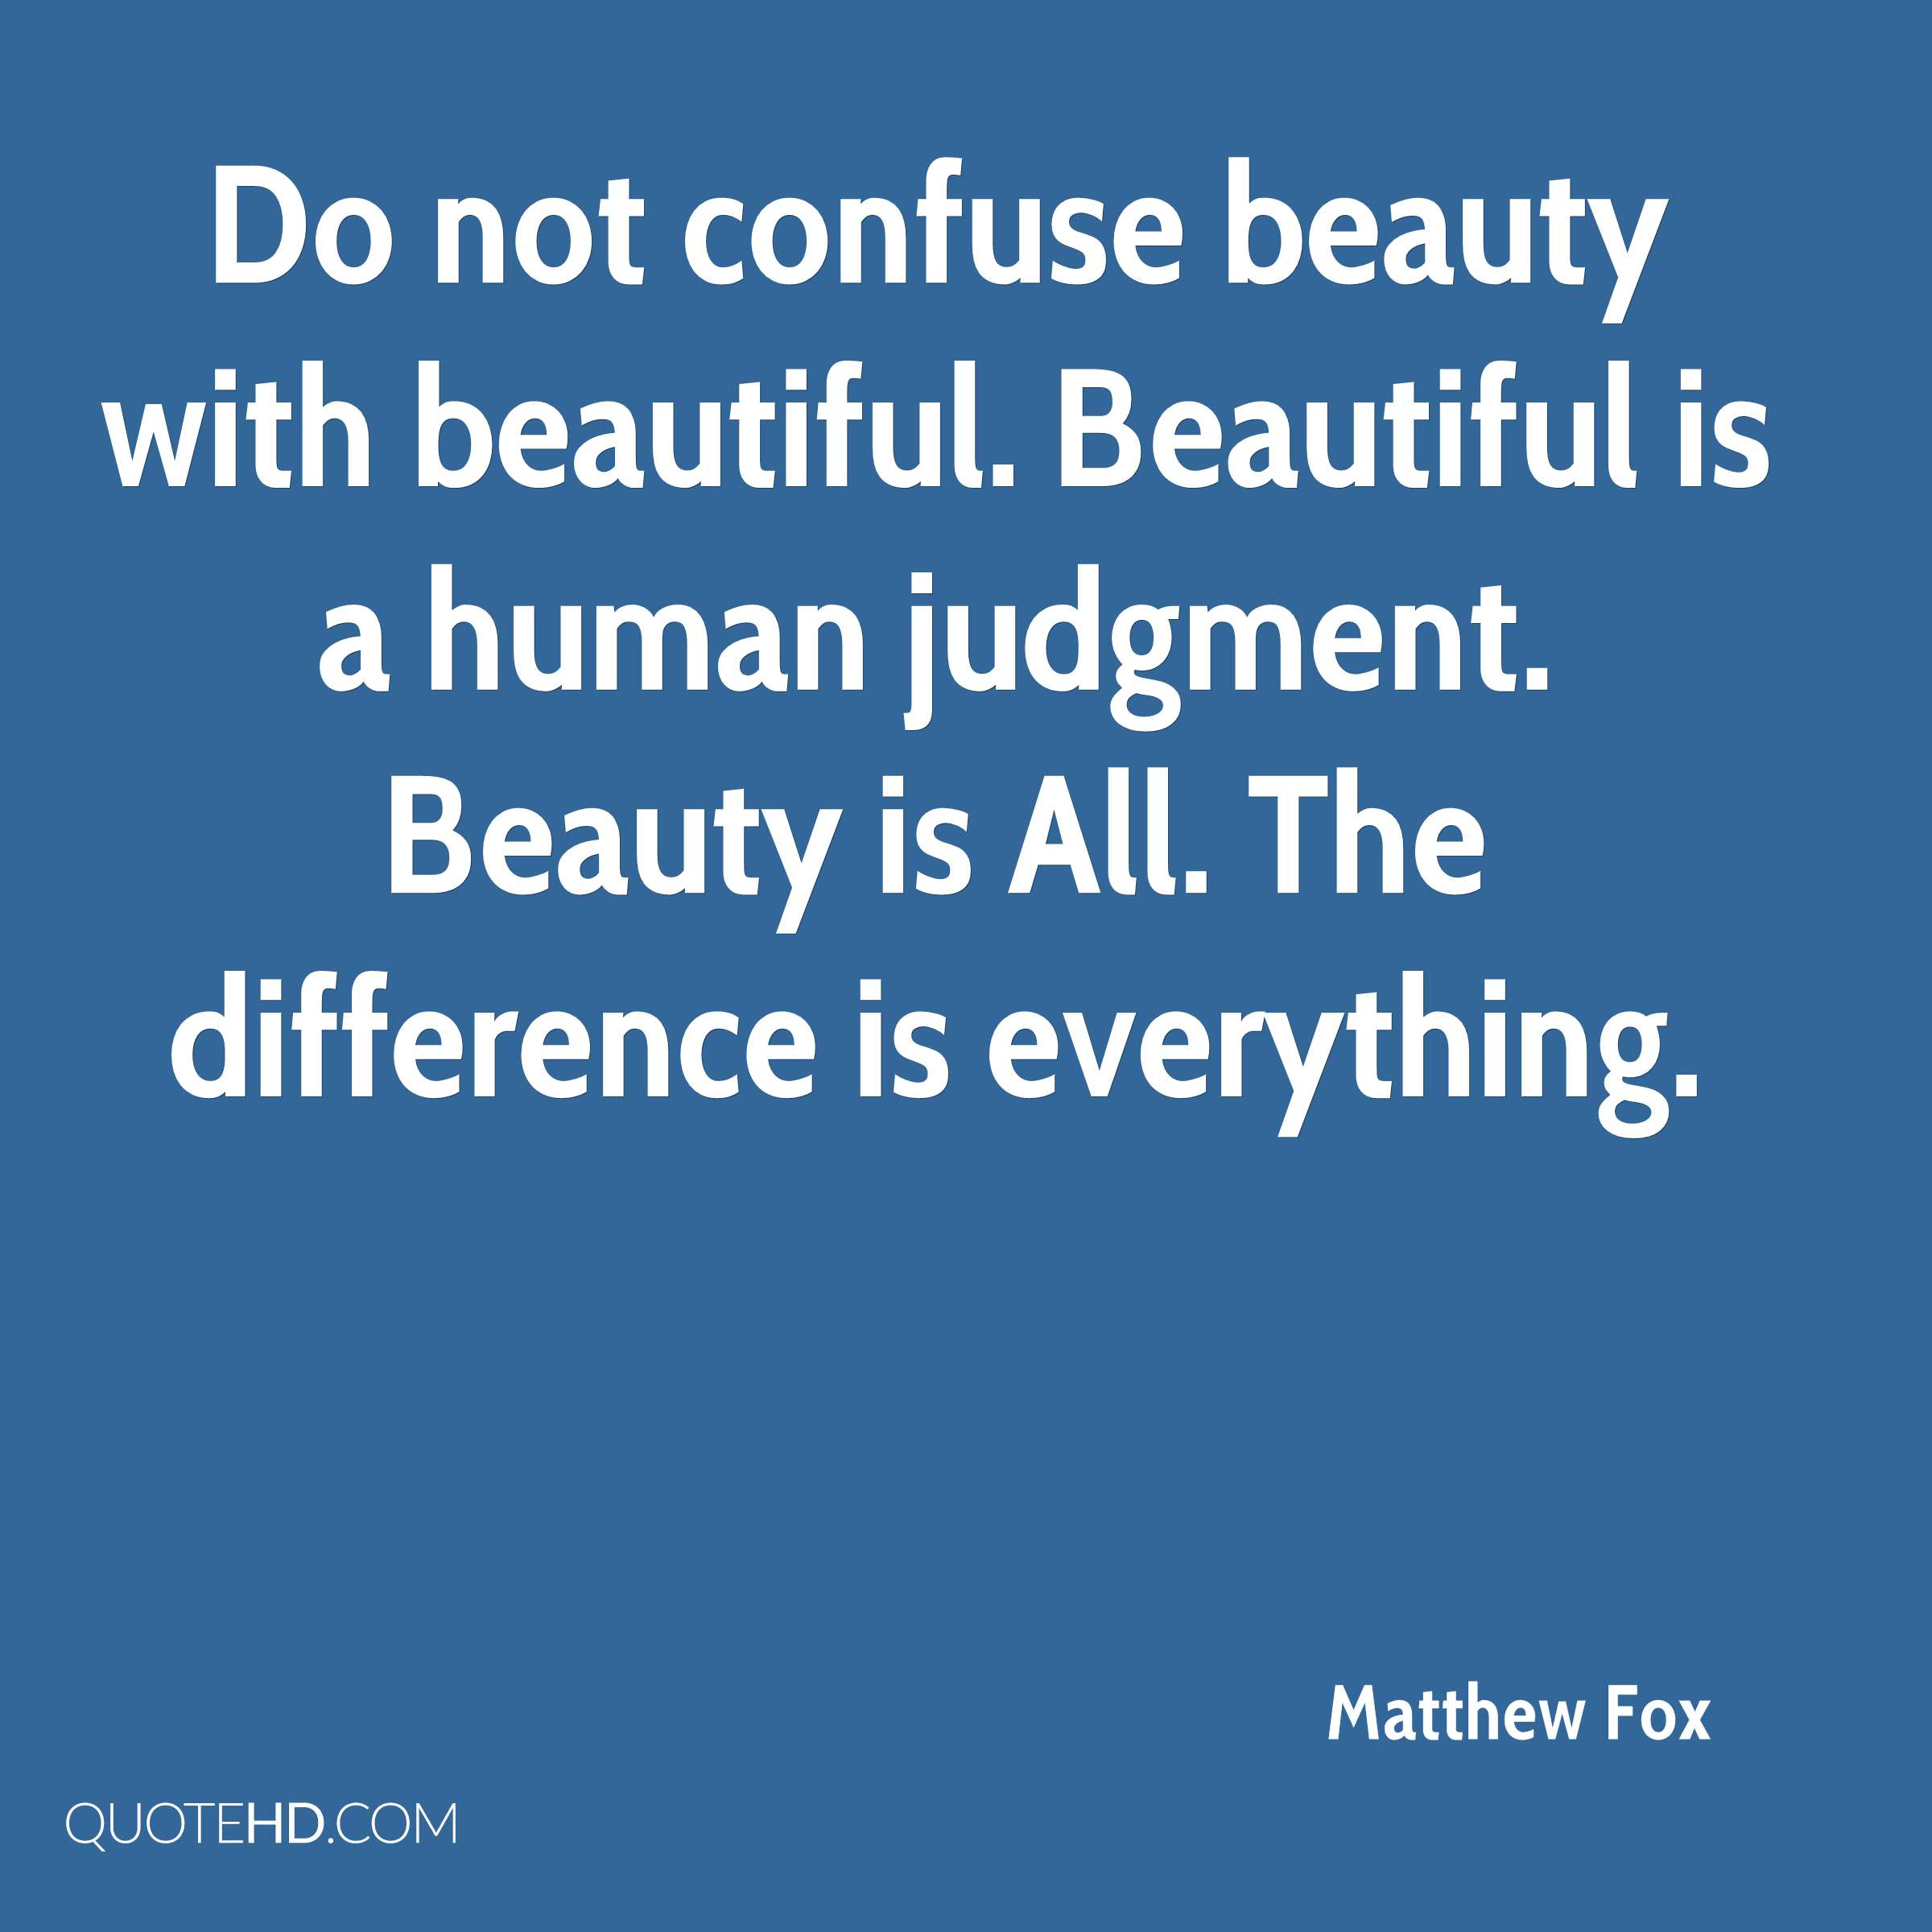 Do not confuse beauty with beautiful. Beautiful is a human judgment. Beauty is All. The difference is everything.